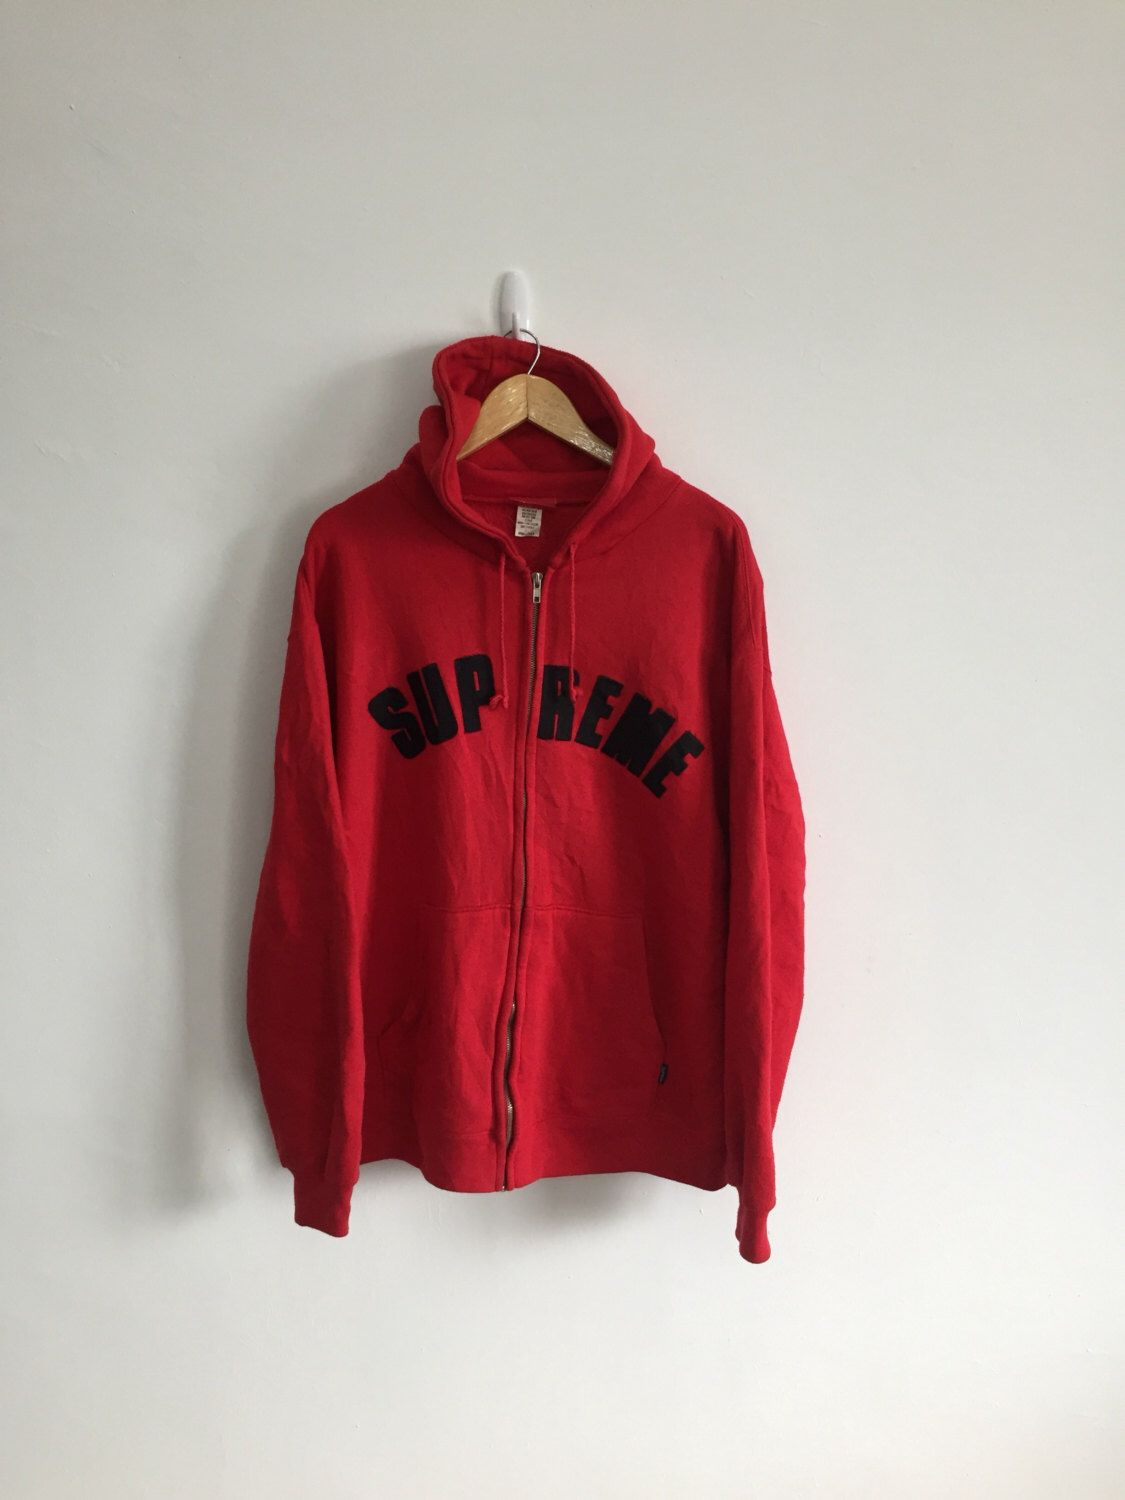 Rare Vintage Supreme Spell Out Red Hoodie Zipper Sweater Sweatshirt Made In Usa Armpit 24 X28 5 Rare Hip Hop Rap Zippered Sweater Red Hoodie Sweater Sweatshirt